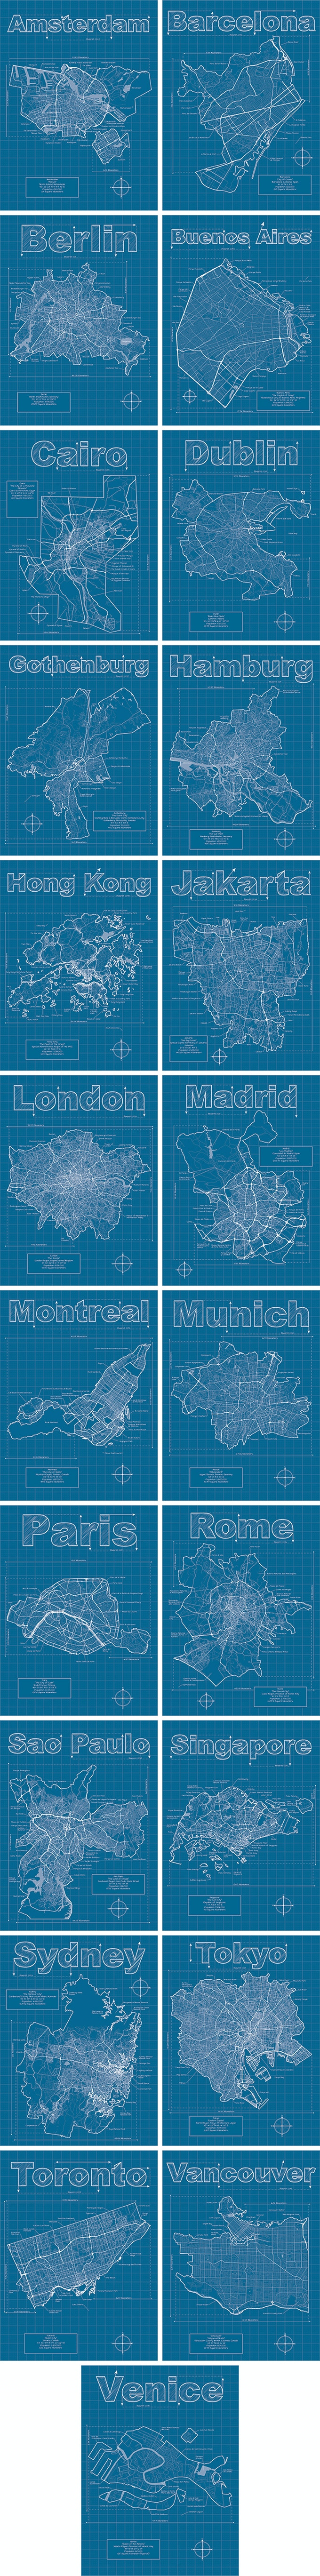 City blueprints artistic city map prints by christopher estes international cities malvernweather Gallery